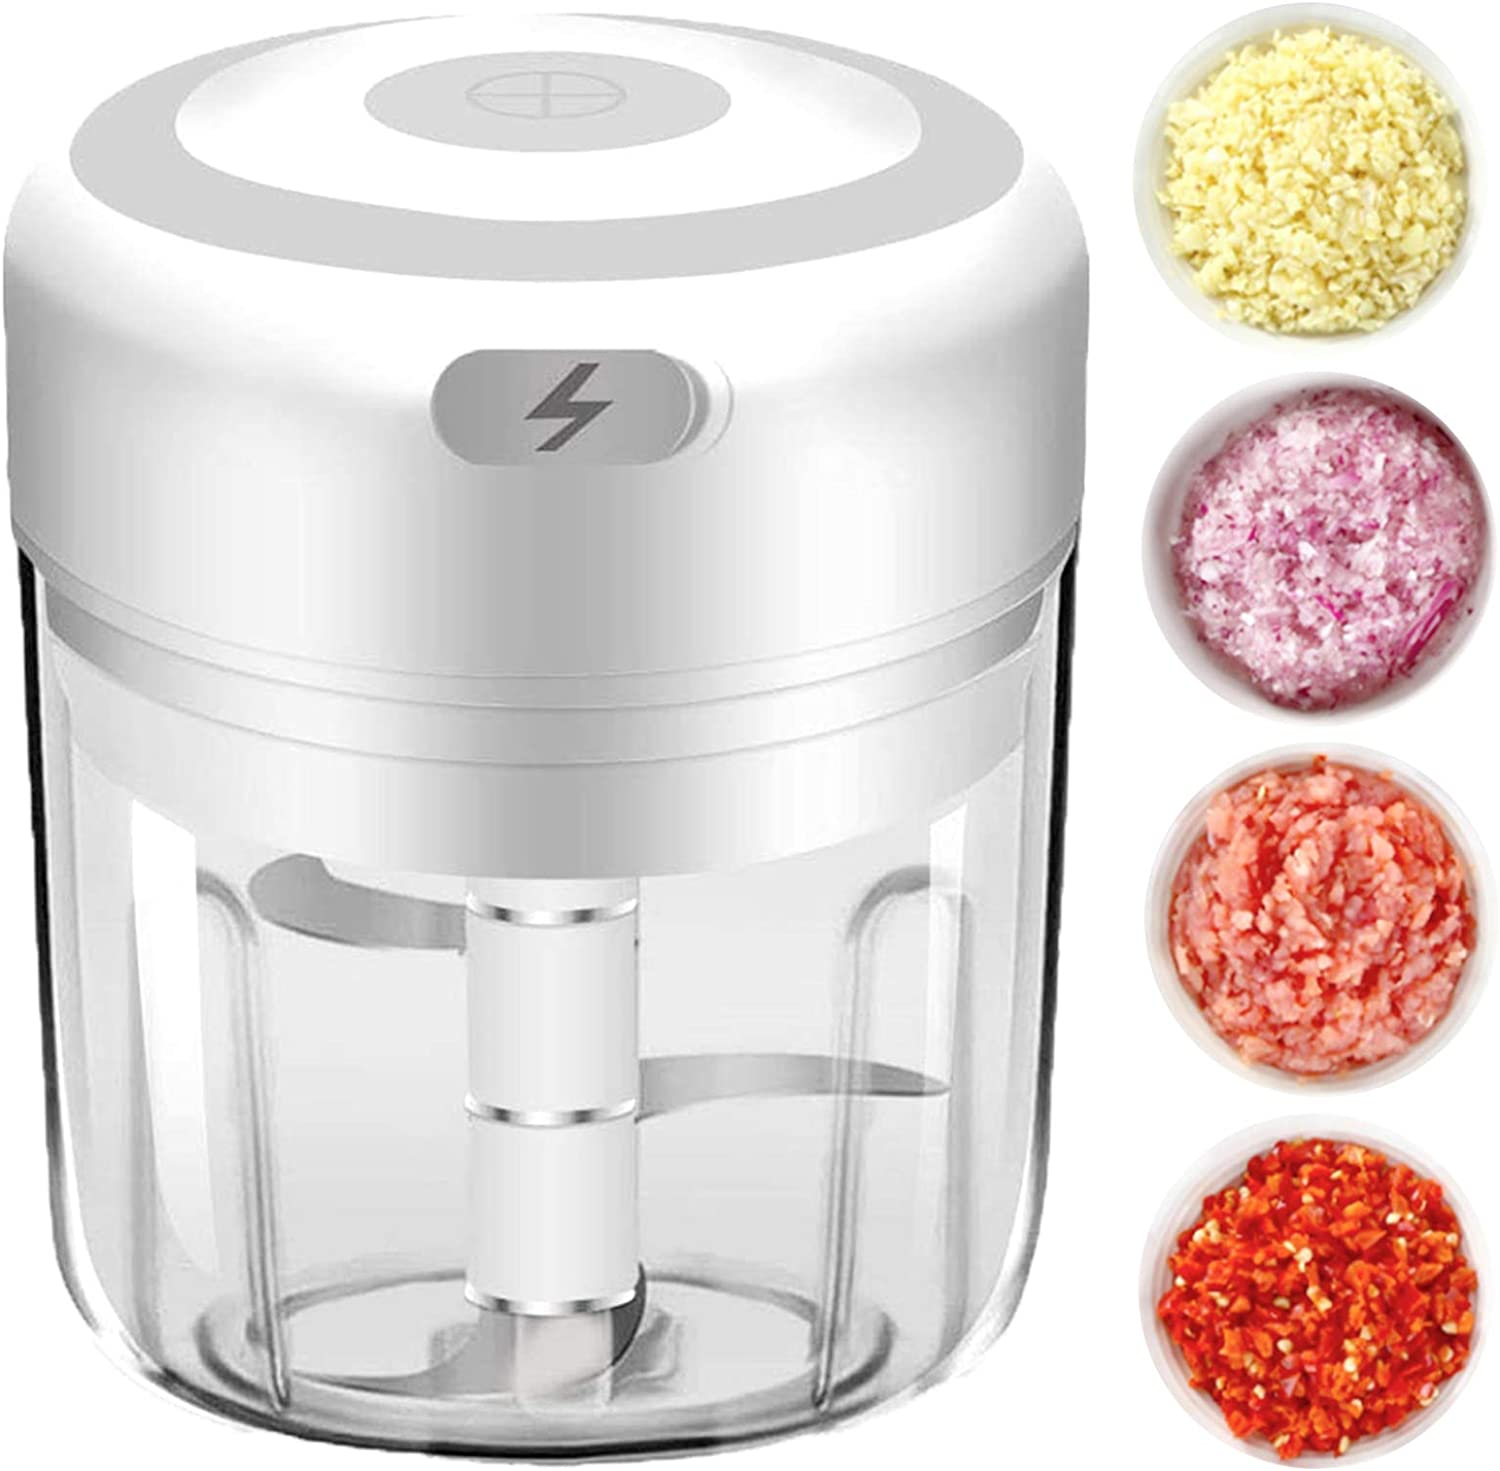 Electric Mini Garlic Chopper, Food Cutter with 250 ml Container, Kitchen Helper to Chop Vegetable and Blend Baby Food